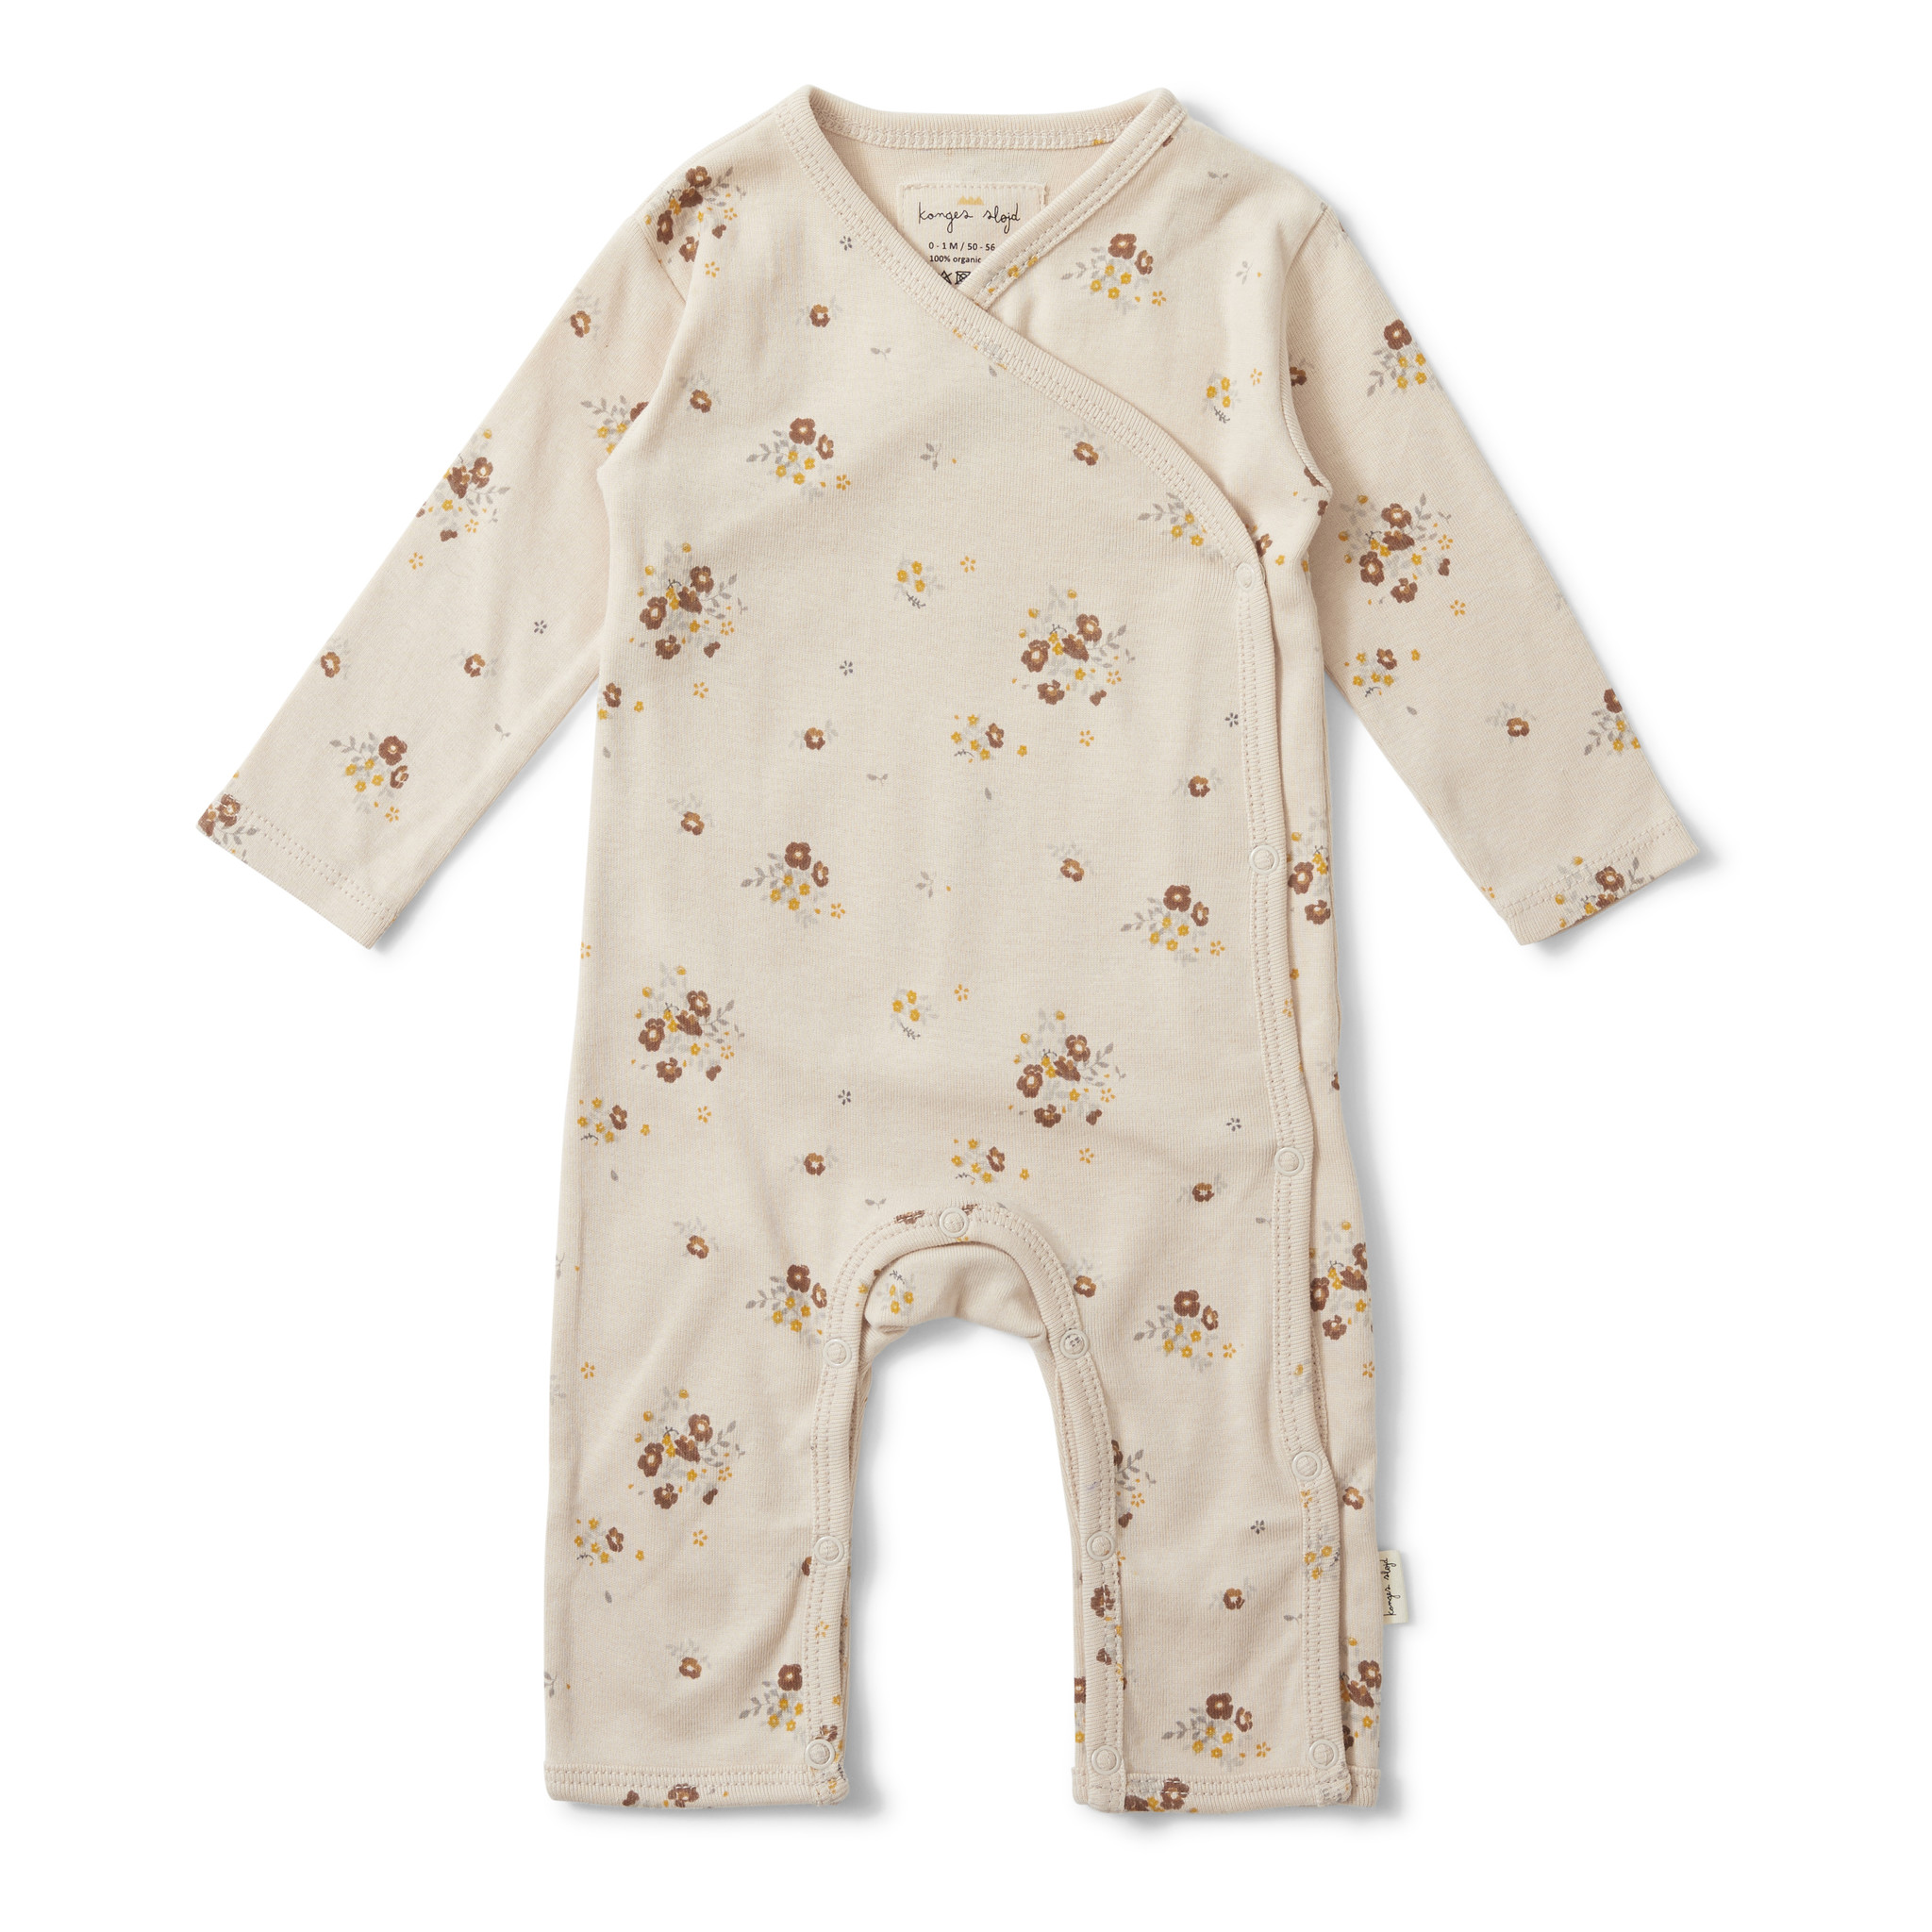 new born onesie nostalgie blush-1